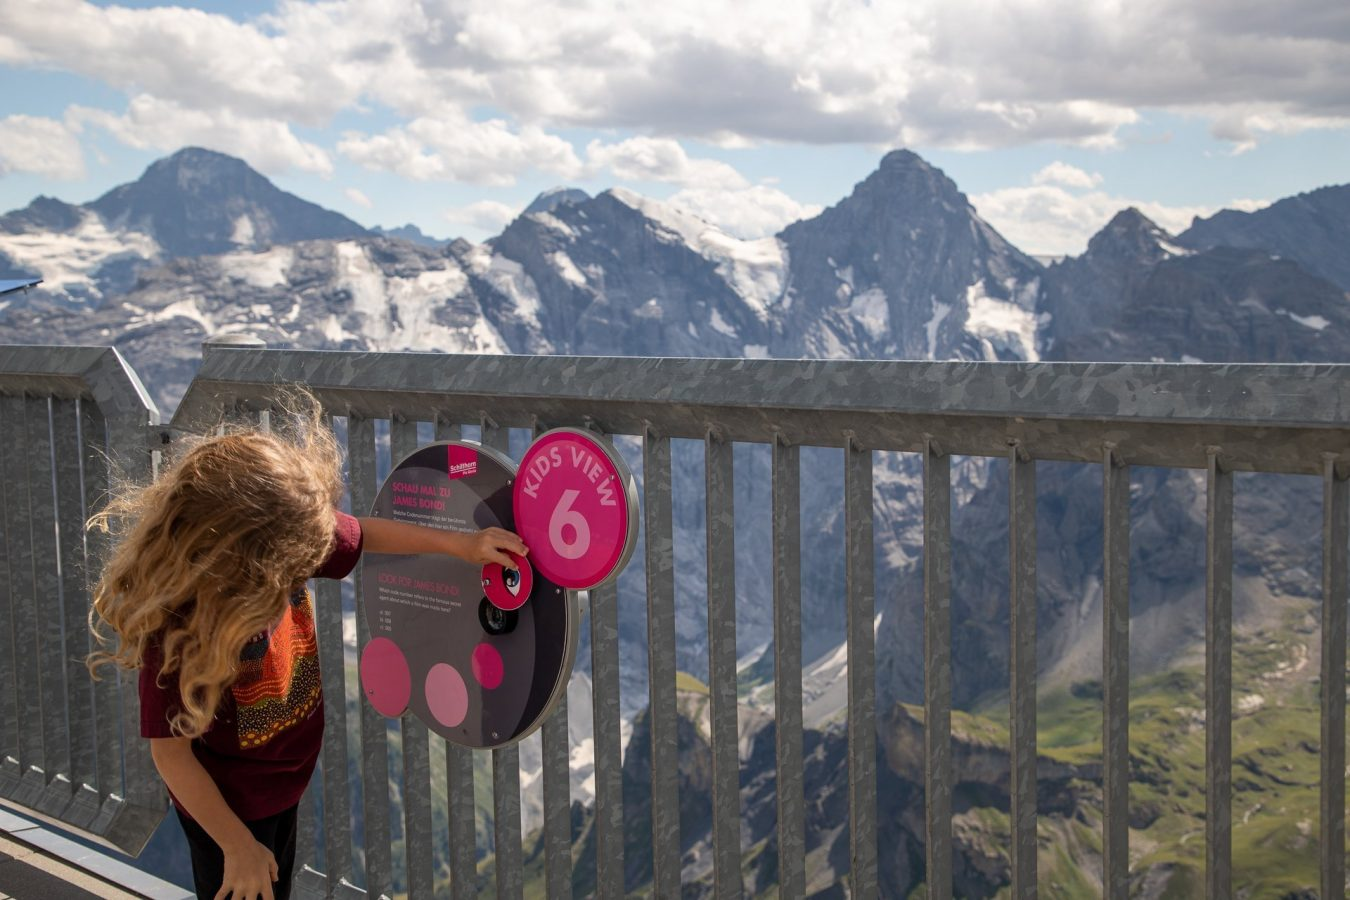 Exploring on the Schilthorn